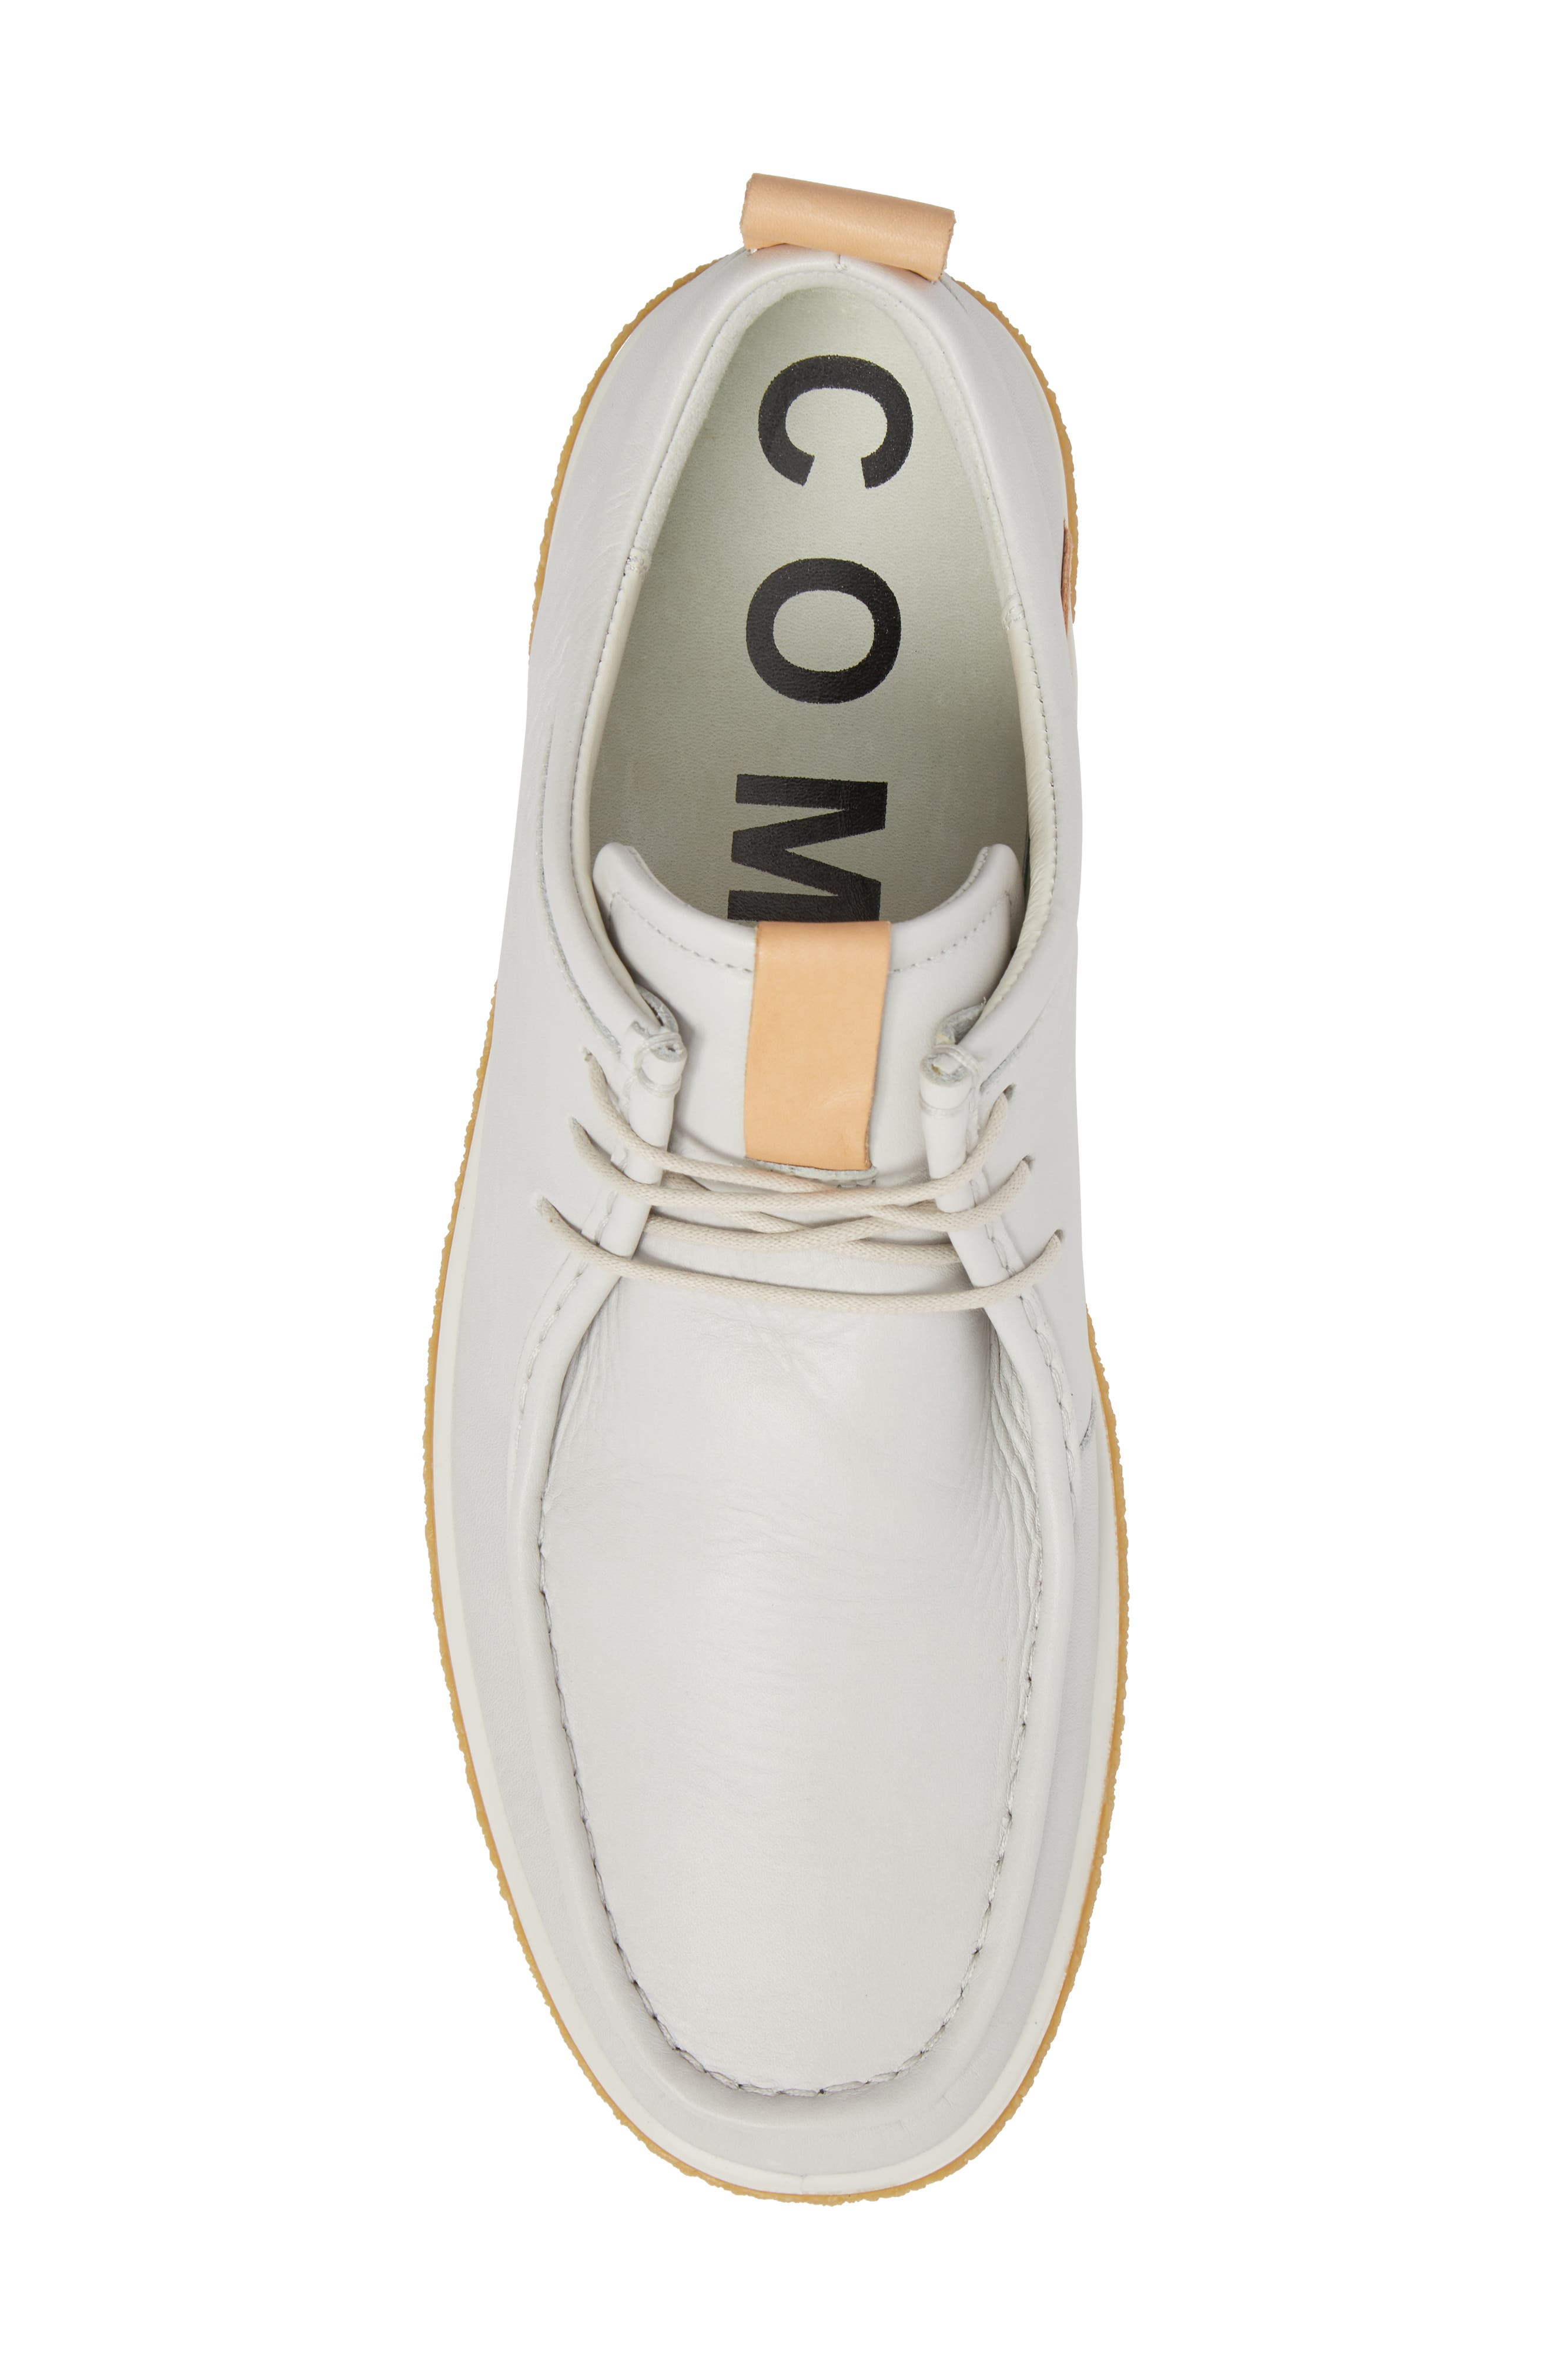 Crepetray Moc Toe Low Chukka Boot,                             Alternate thumbnail 5, color,                             Off White Leather